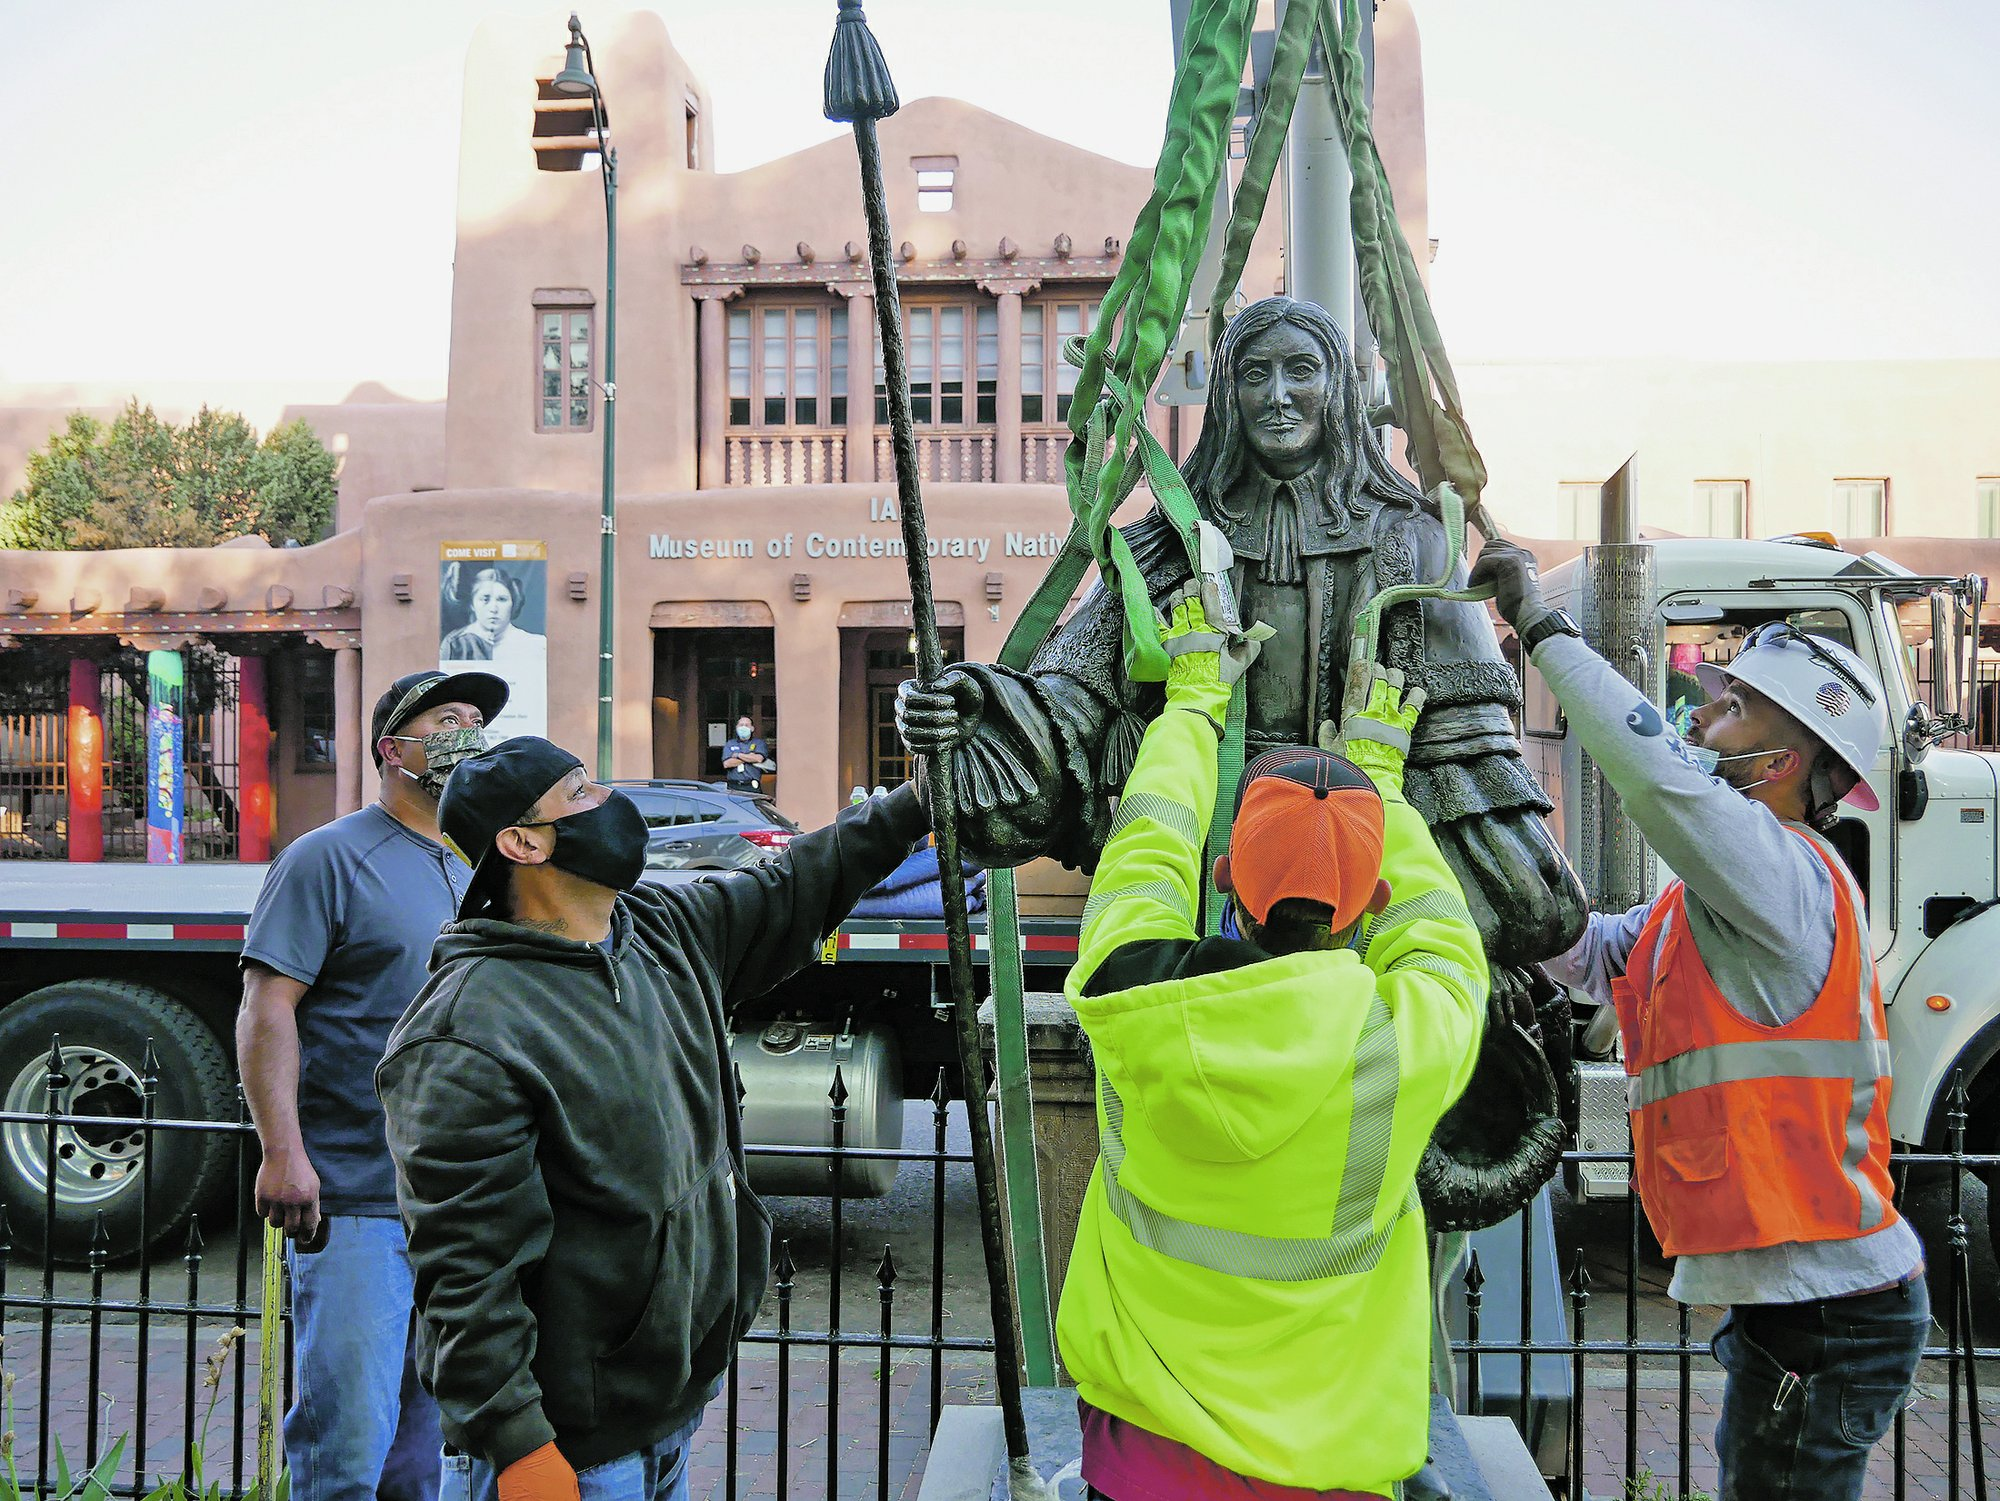 Statue Of Spanish Governor Removed From New Mexico Park